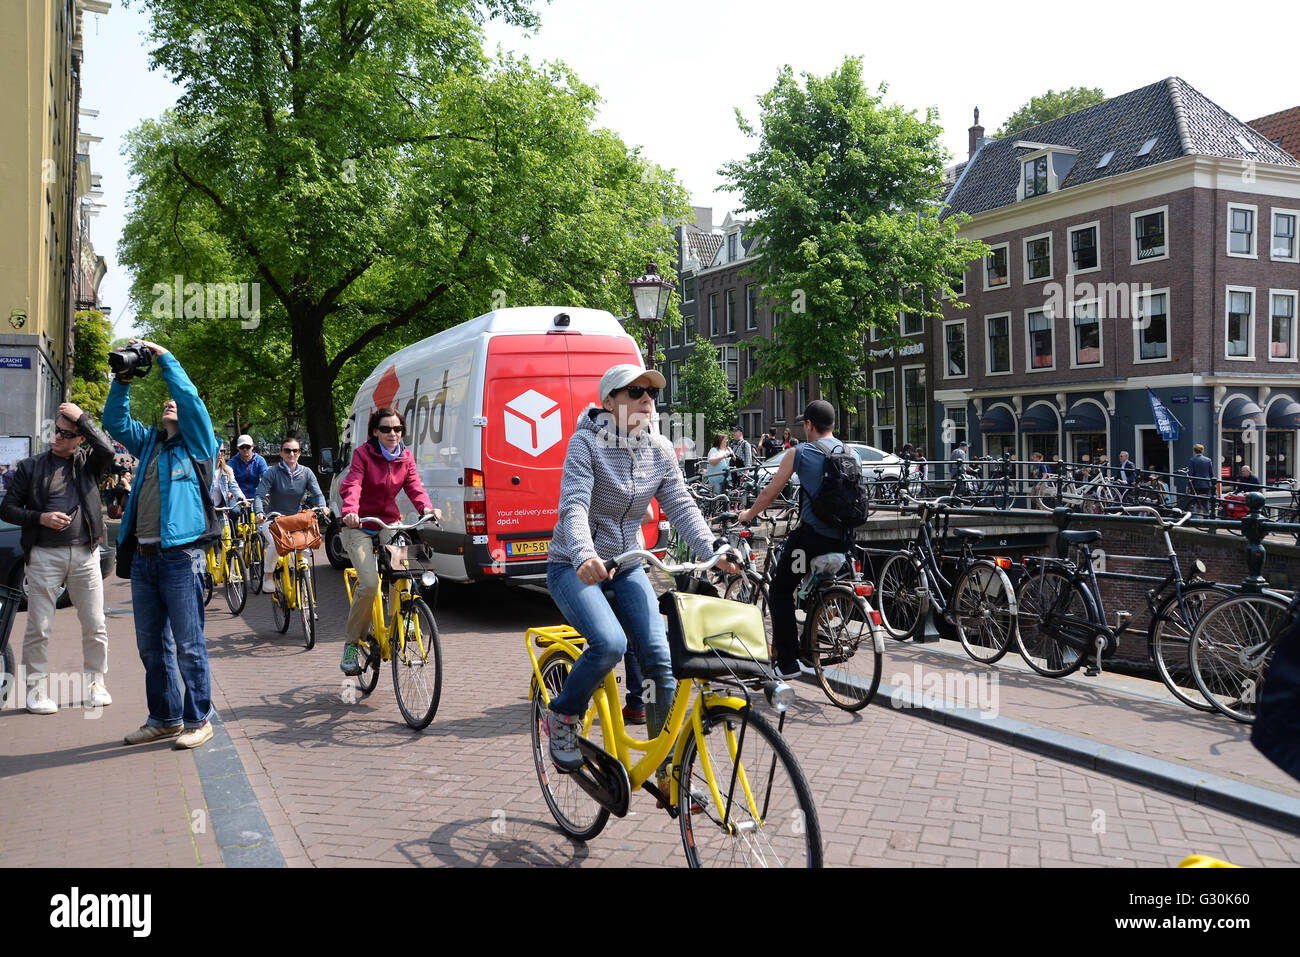 Cyclists in Bike City Amsterdam ride along canal road on bright yellow rented bikes. - Stock Image